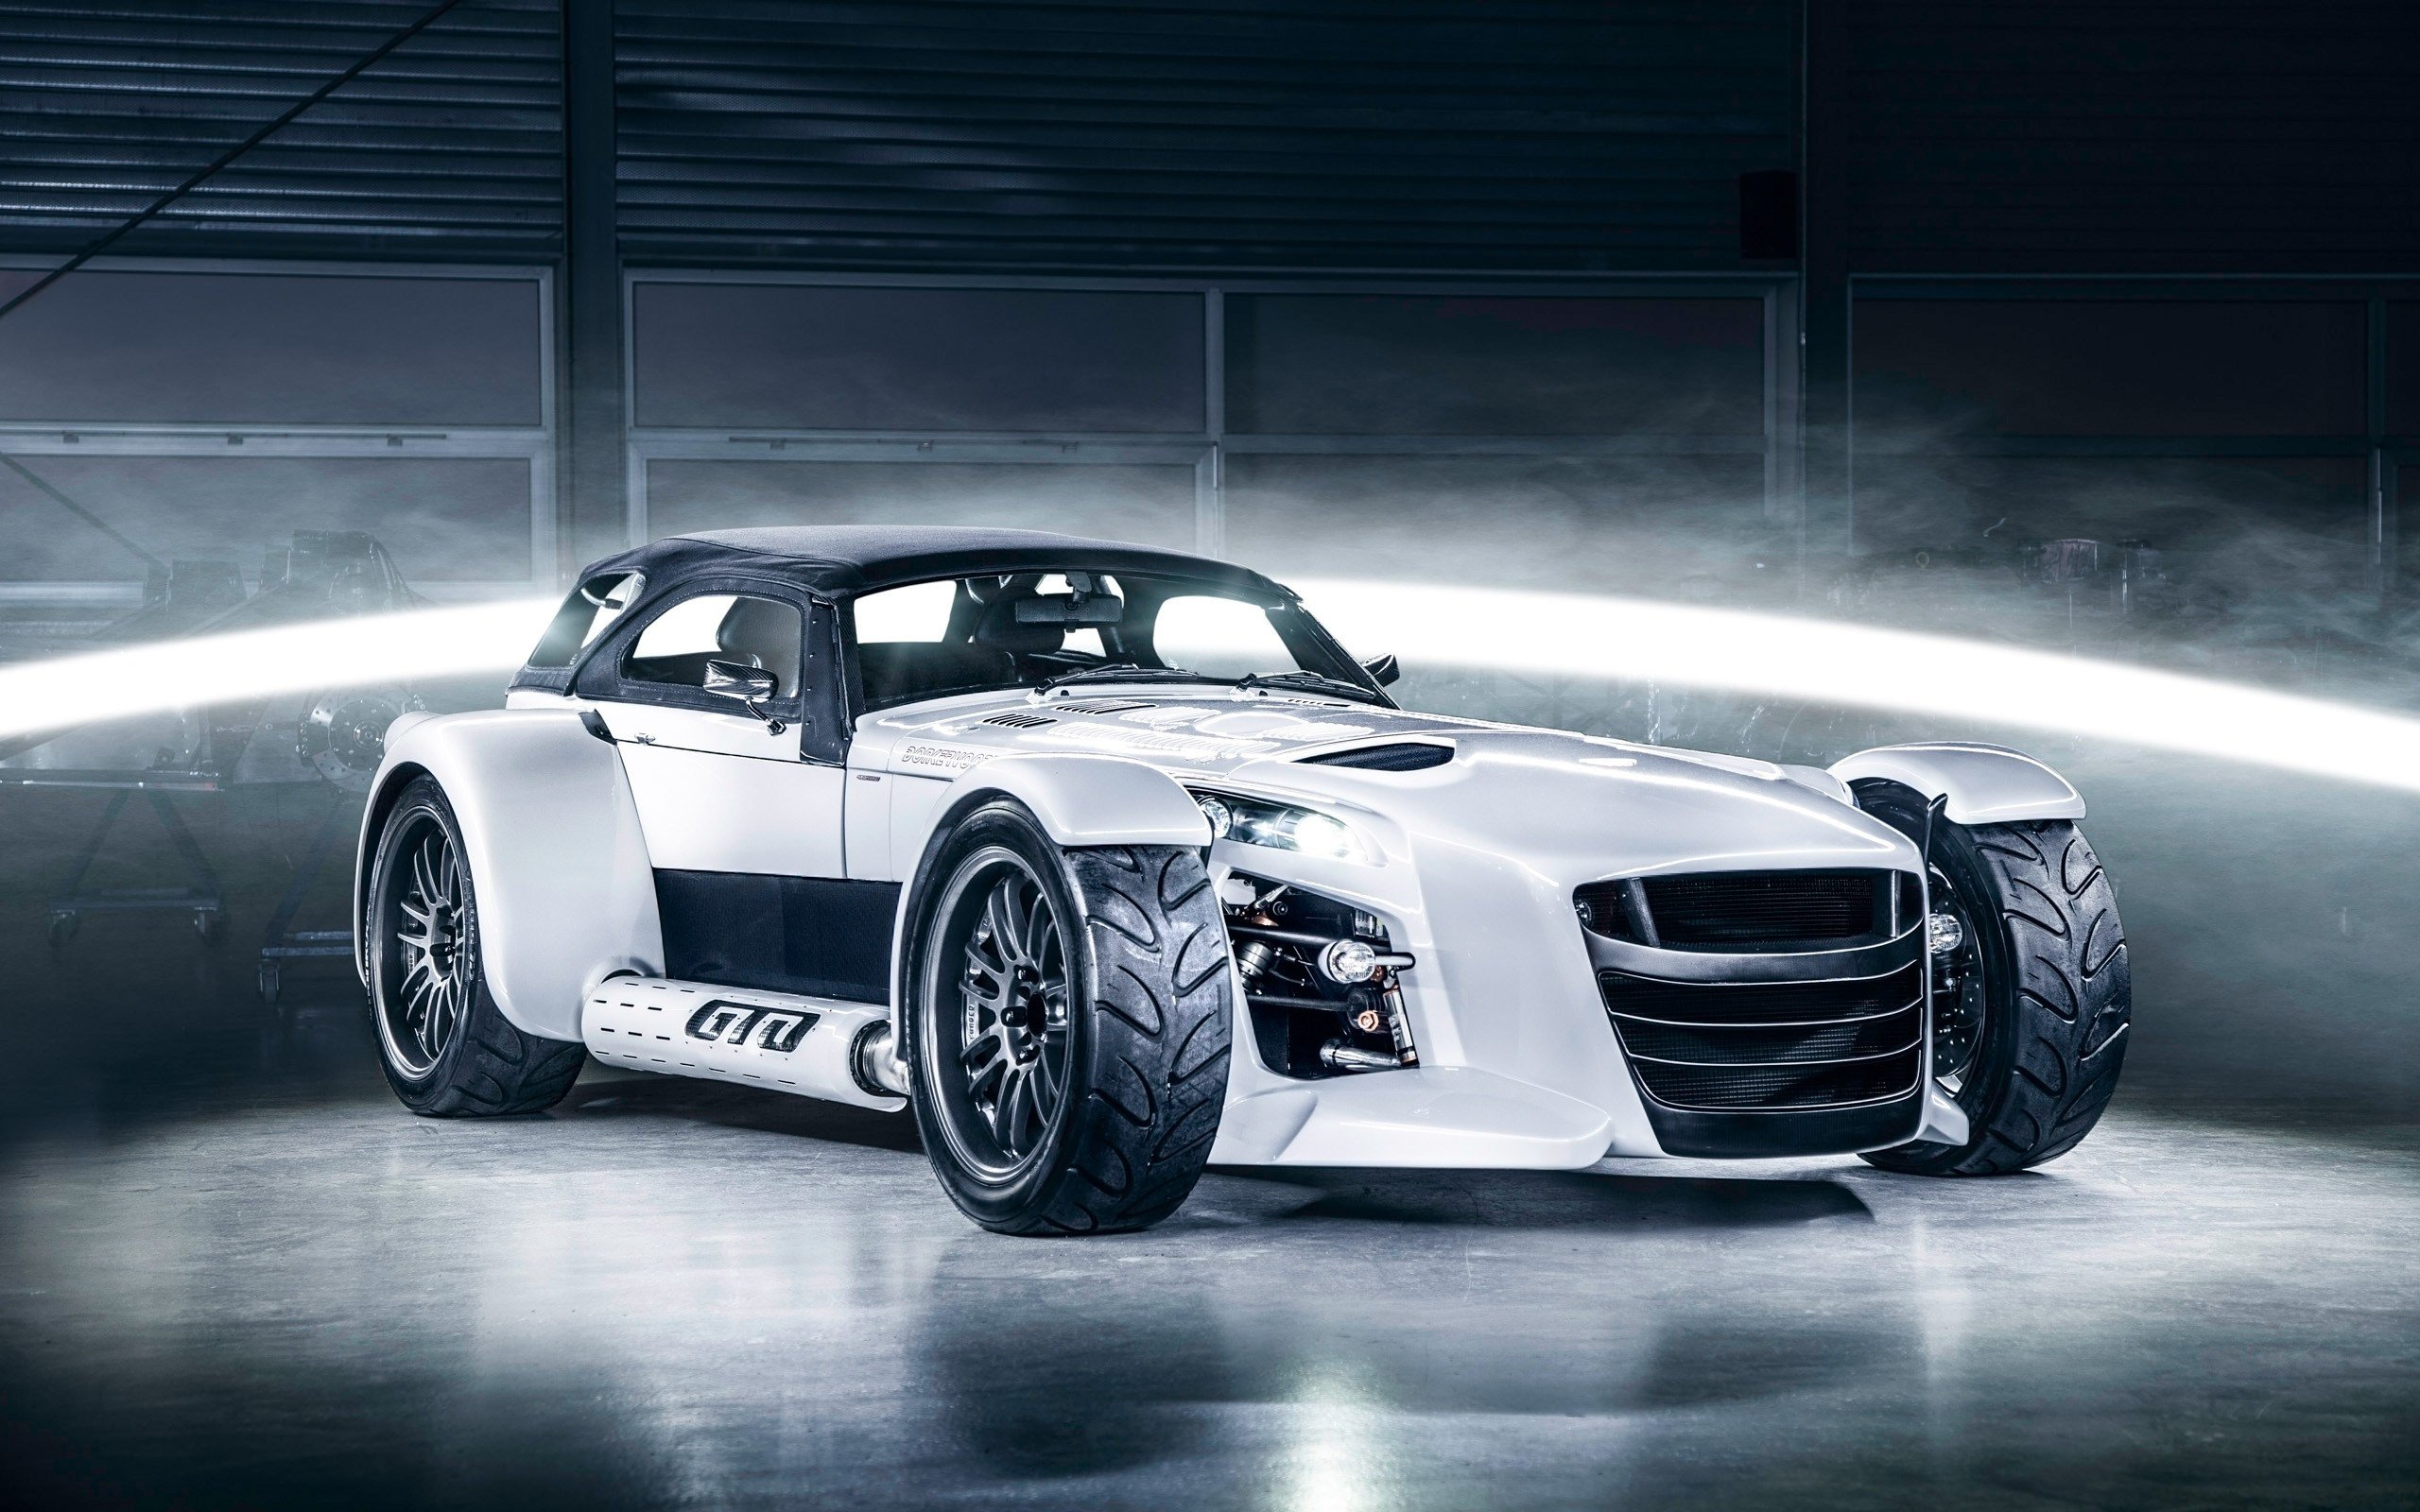 New 2015 Donkervoort D8 Gto Bilster Berg Edition Wallpaper On This Month